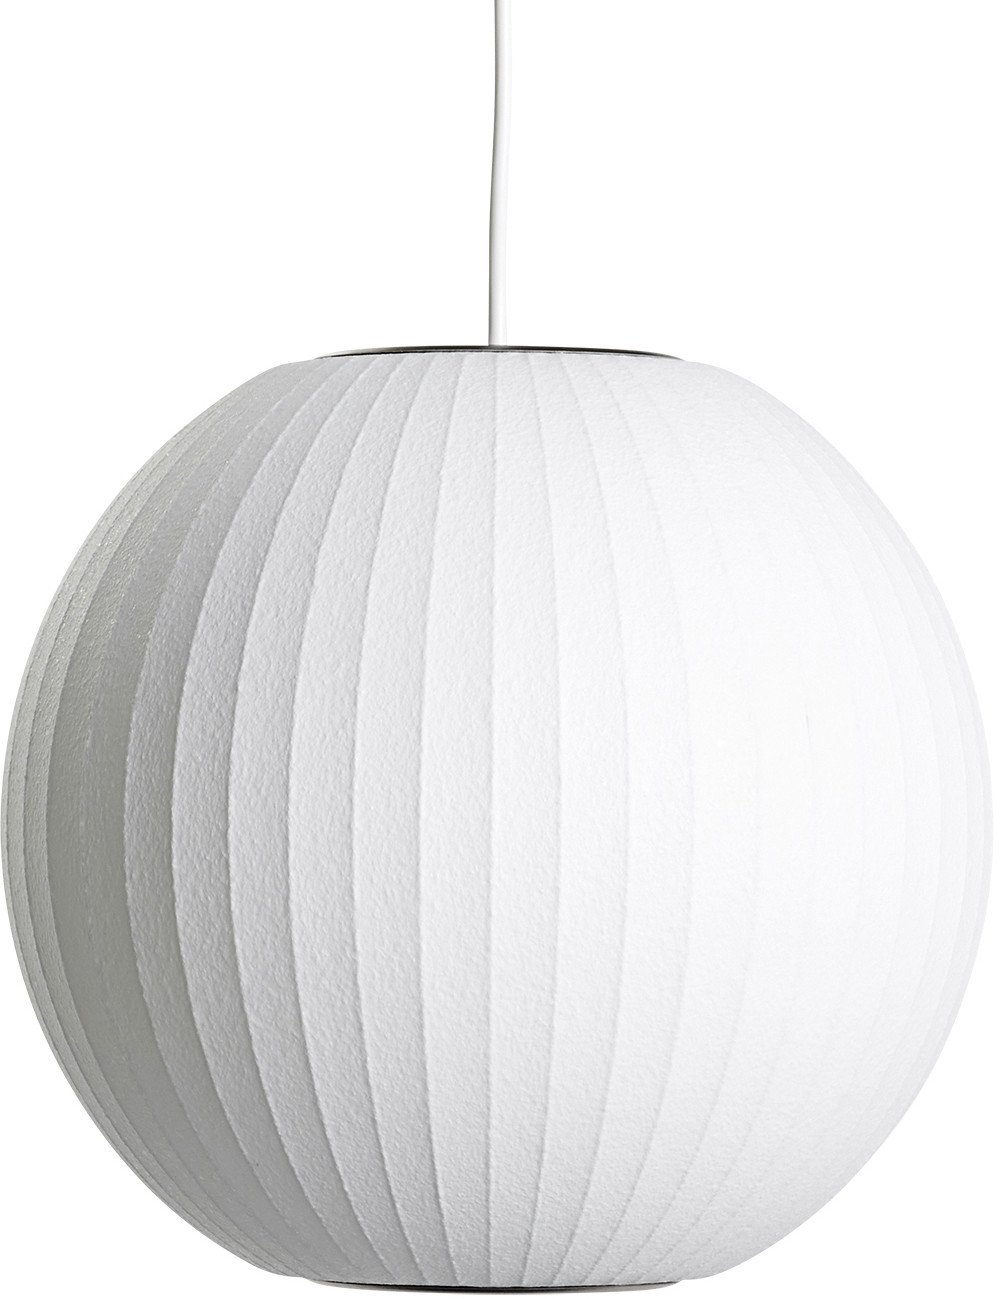 Pendant Lamp Nelson Lantern S White by G. Nelson for HAY - 501854 - photo